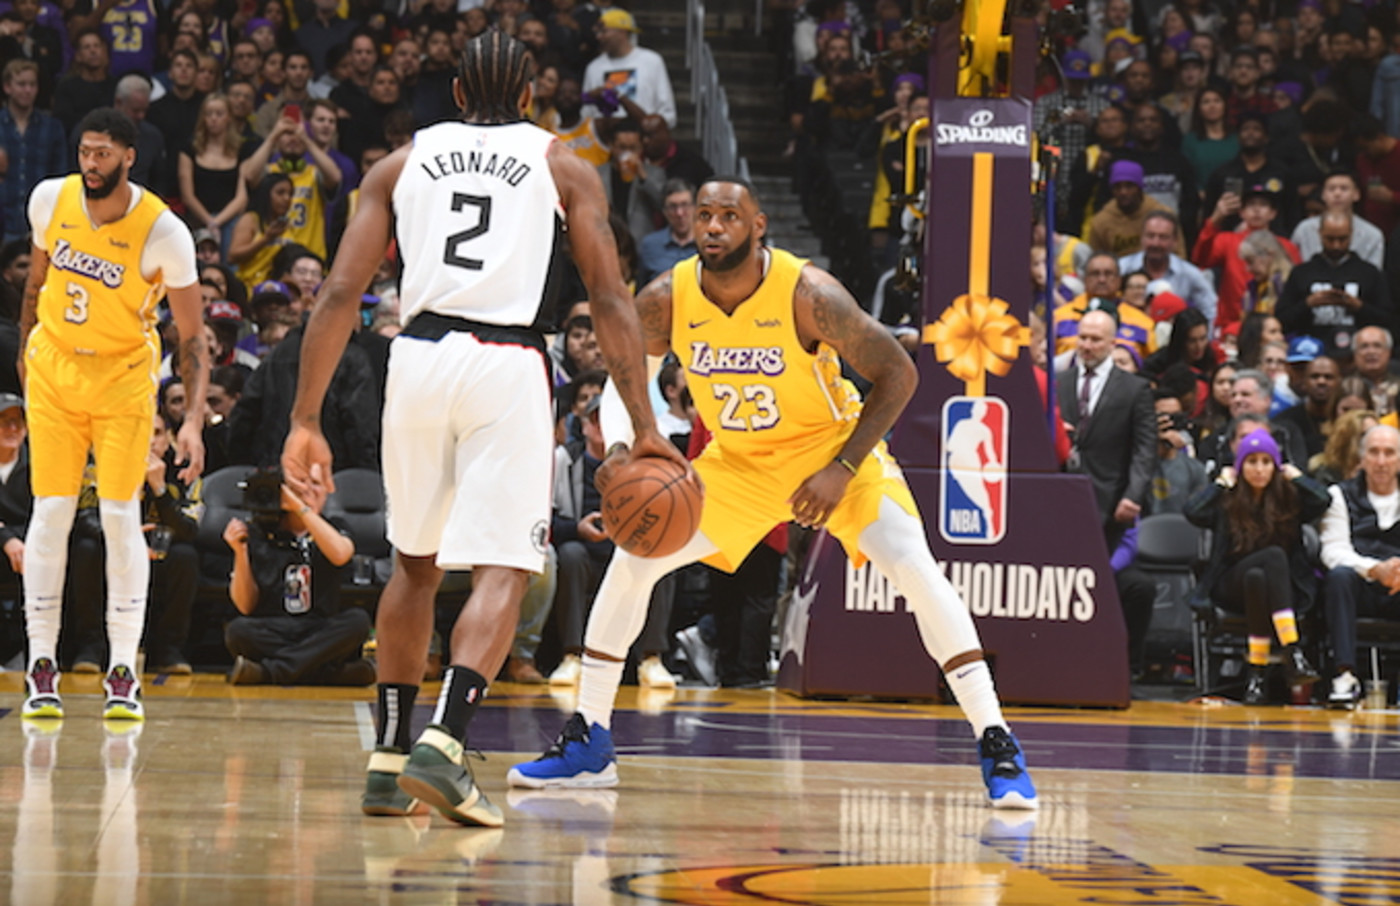 LeBron James plays defense against Kawhi Leonard during Lakers/Clippers game.